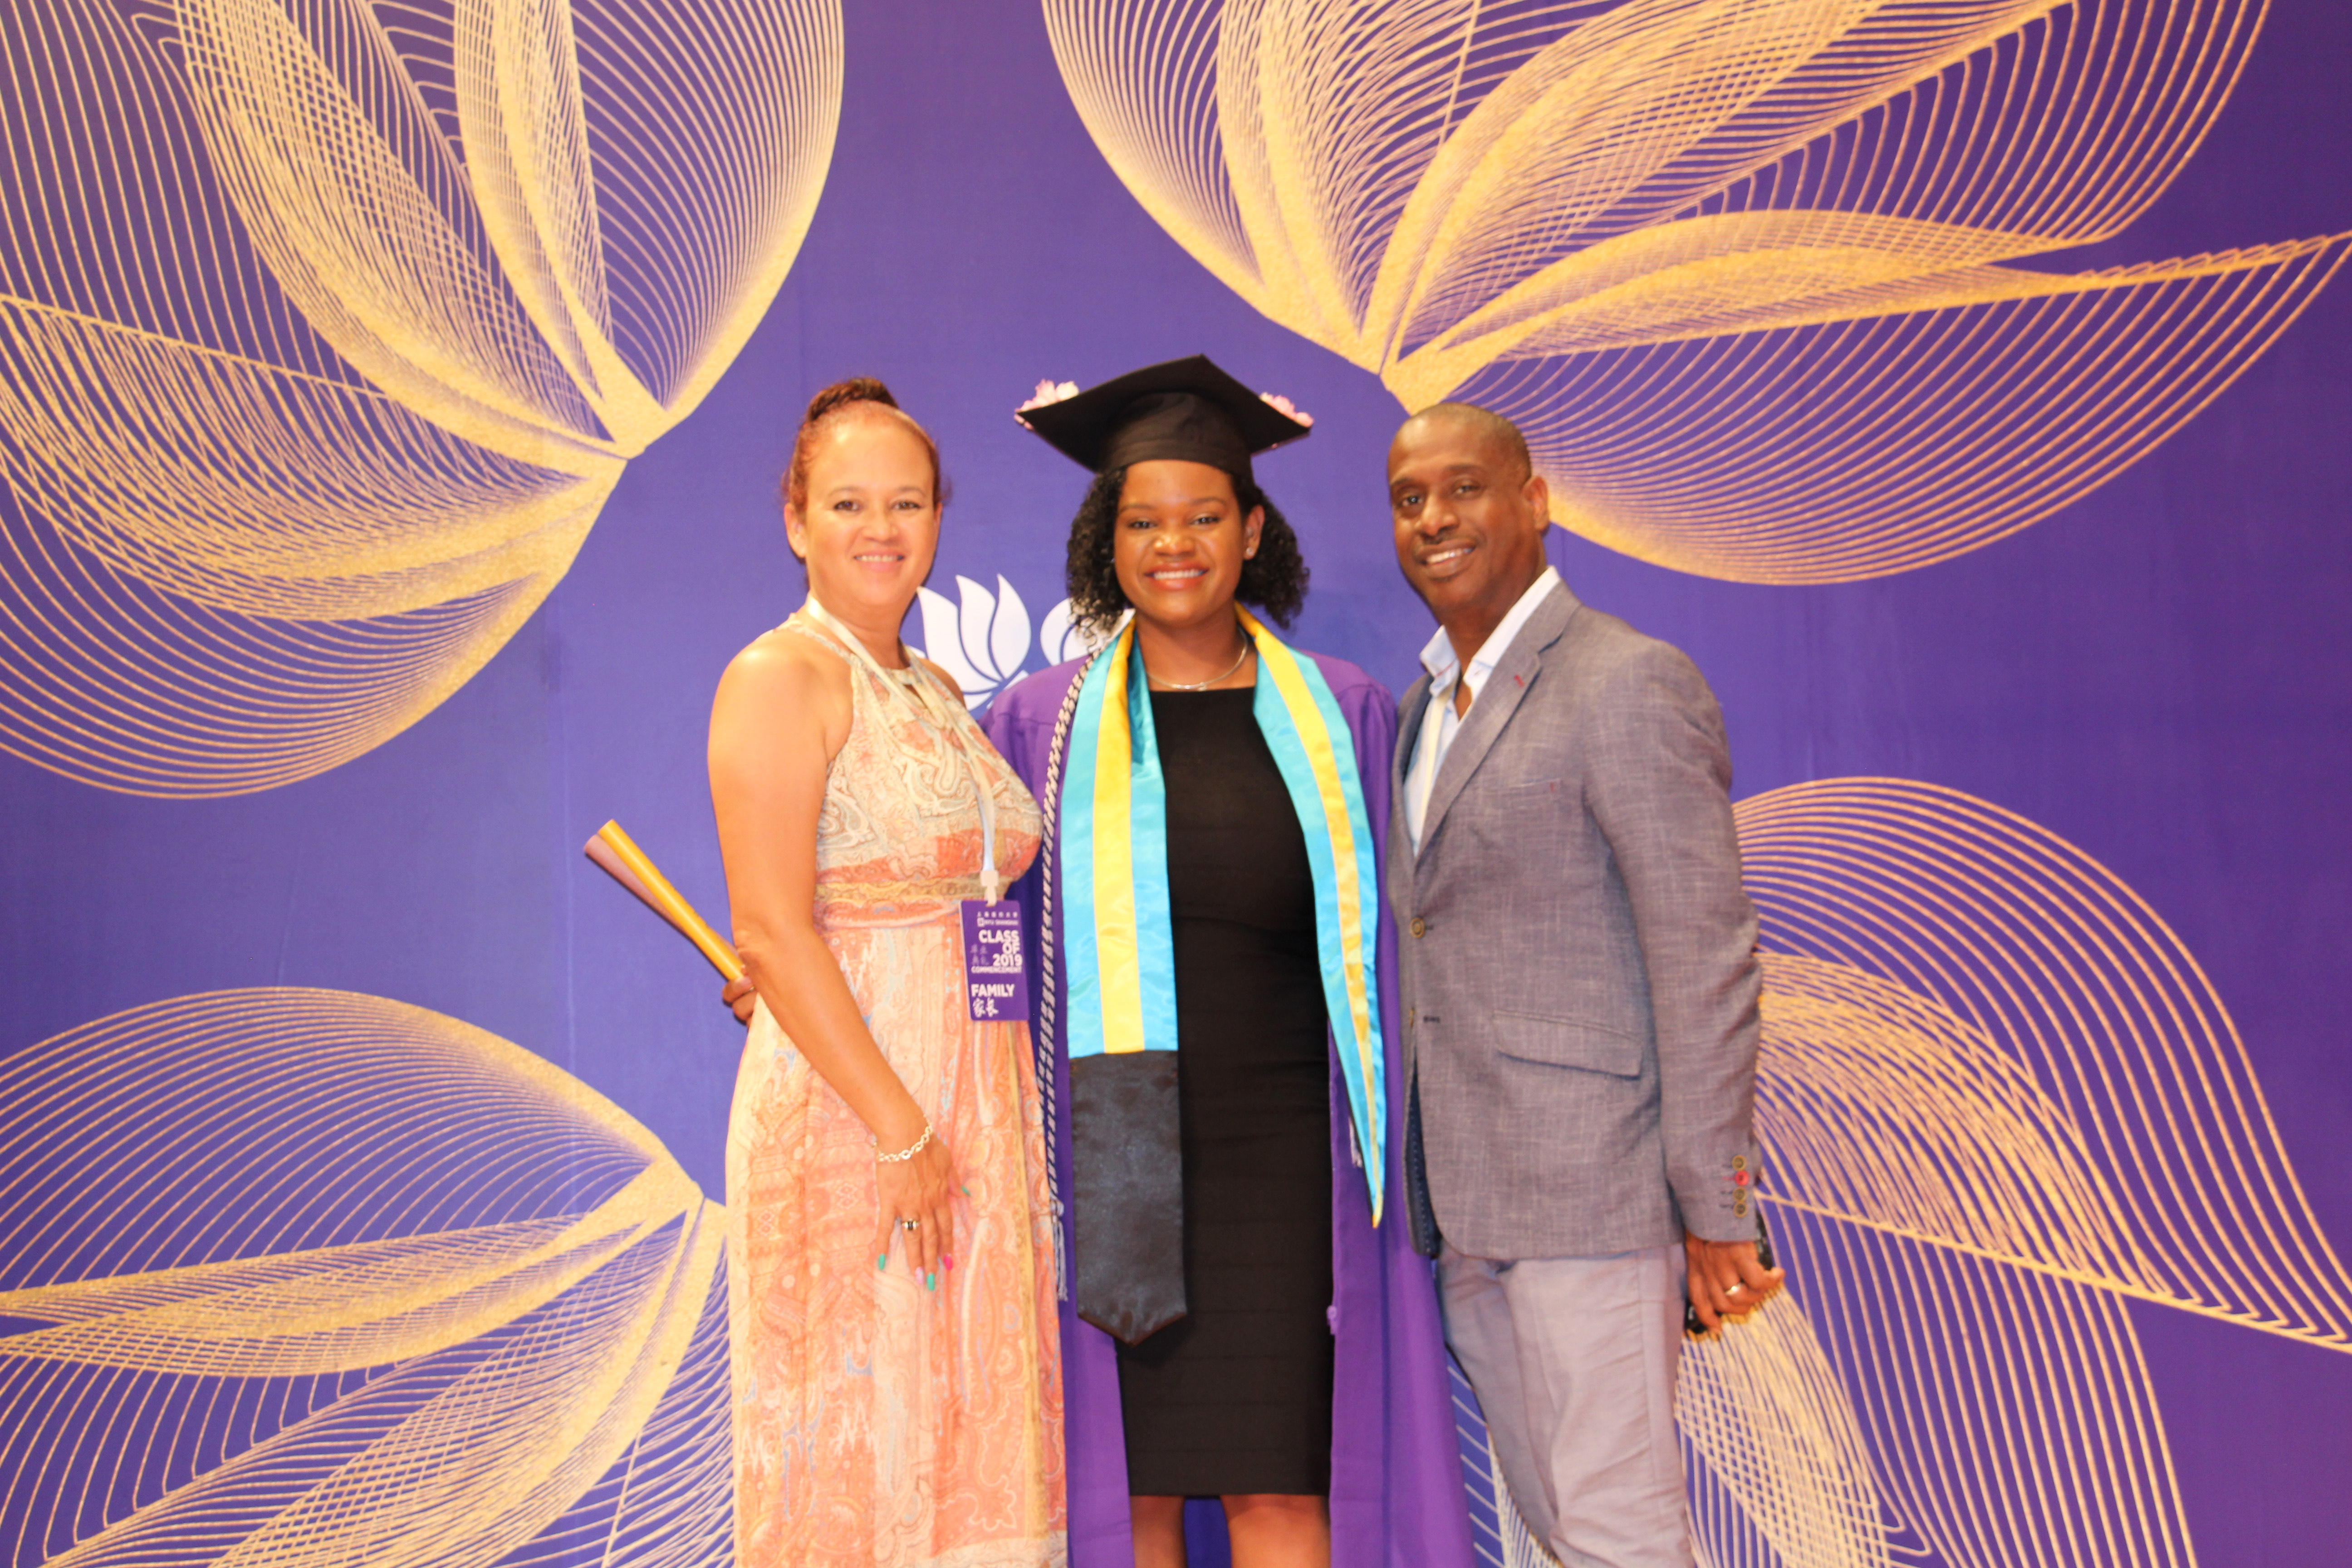 Glinton poses with her parents in NYU Shanghai graduation robes